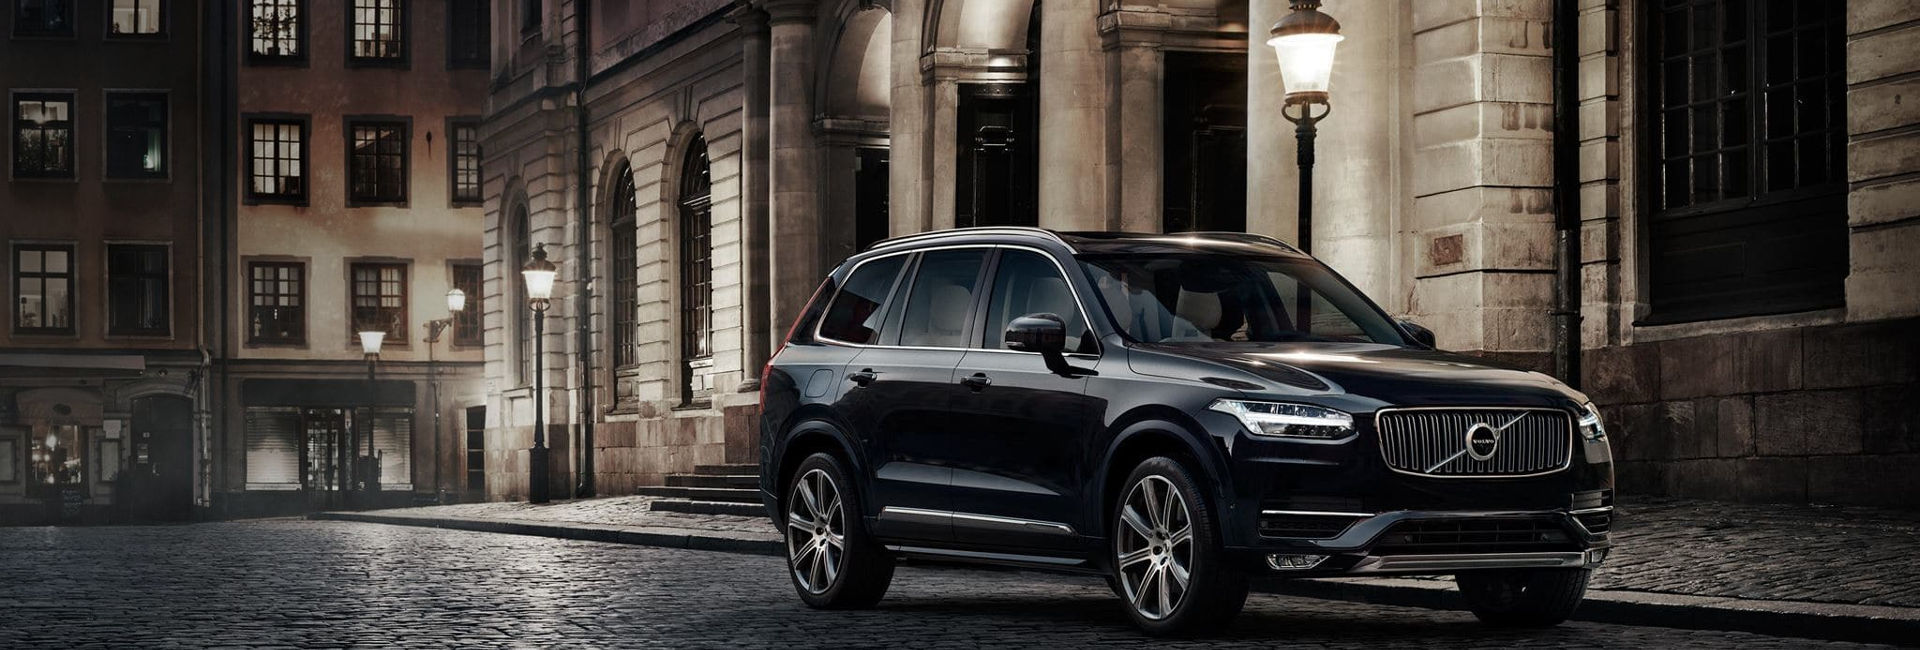 XC90 D5 AWD BUSINESS PLUS 7 POSTI a 57.300,00€